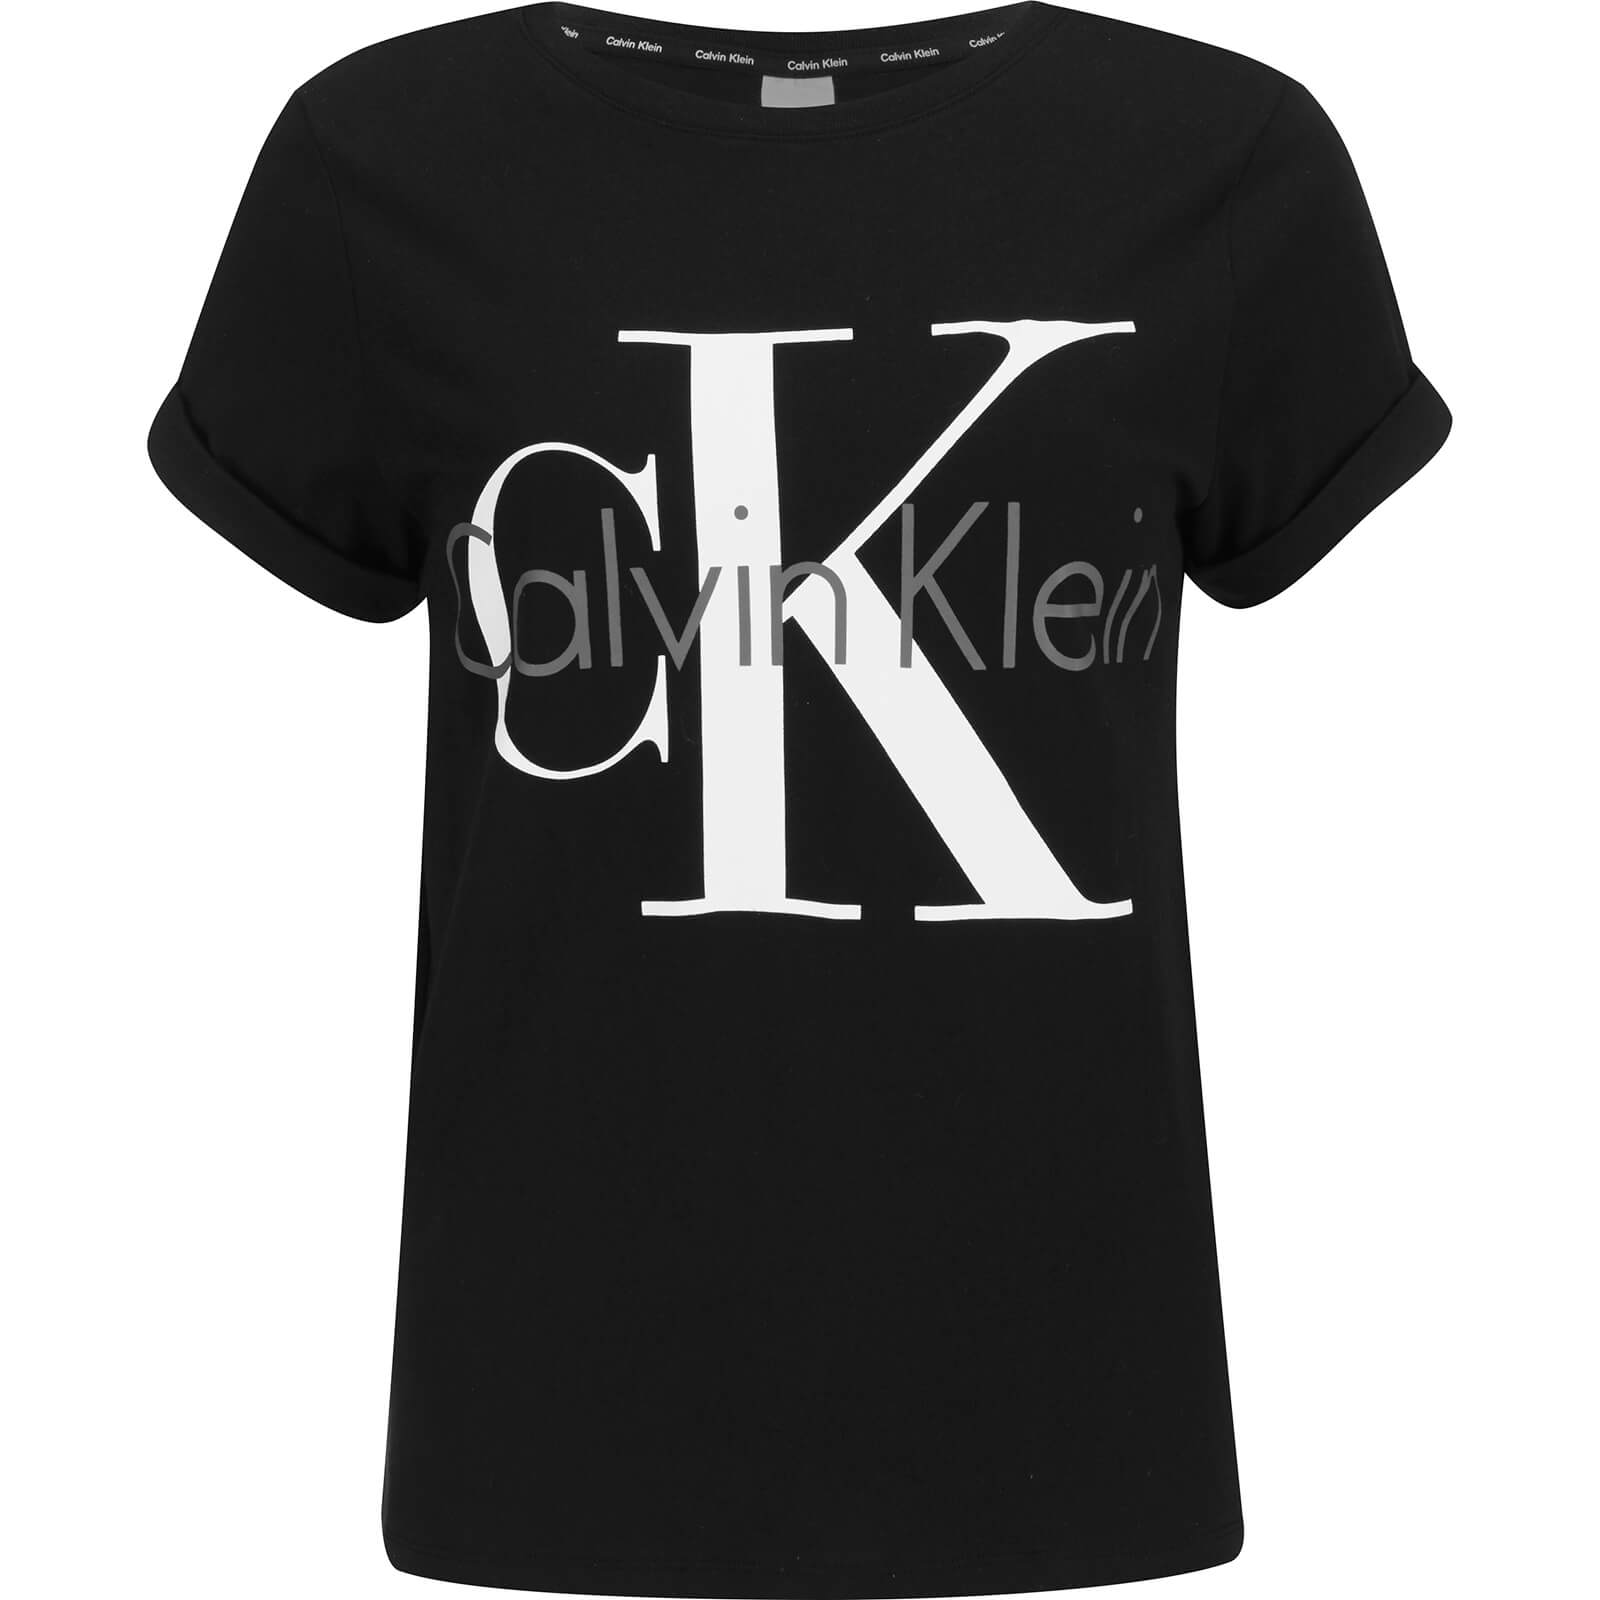 1ce1cc11a9 Calvin Klein Women s Logo Short Sleeve Crew Neck T-Shirt - Black - Free UK  Delivery over £50